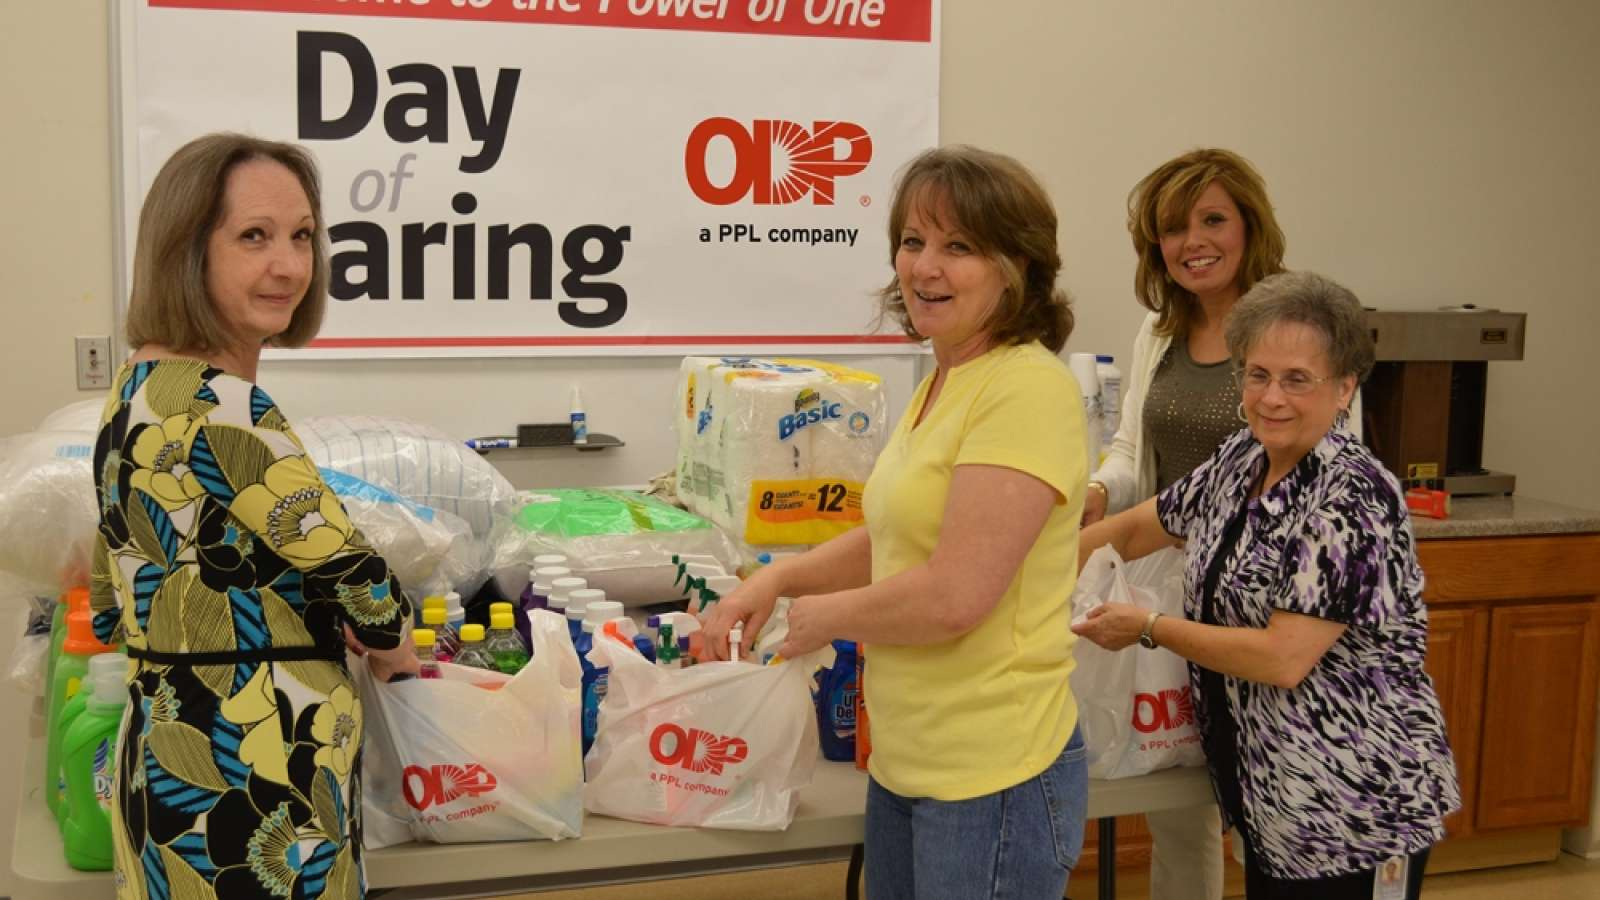 ODP employees volunteering for the Day of Caring event